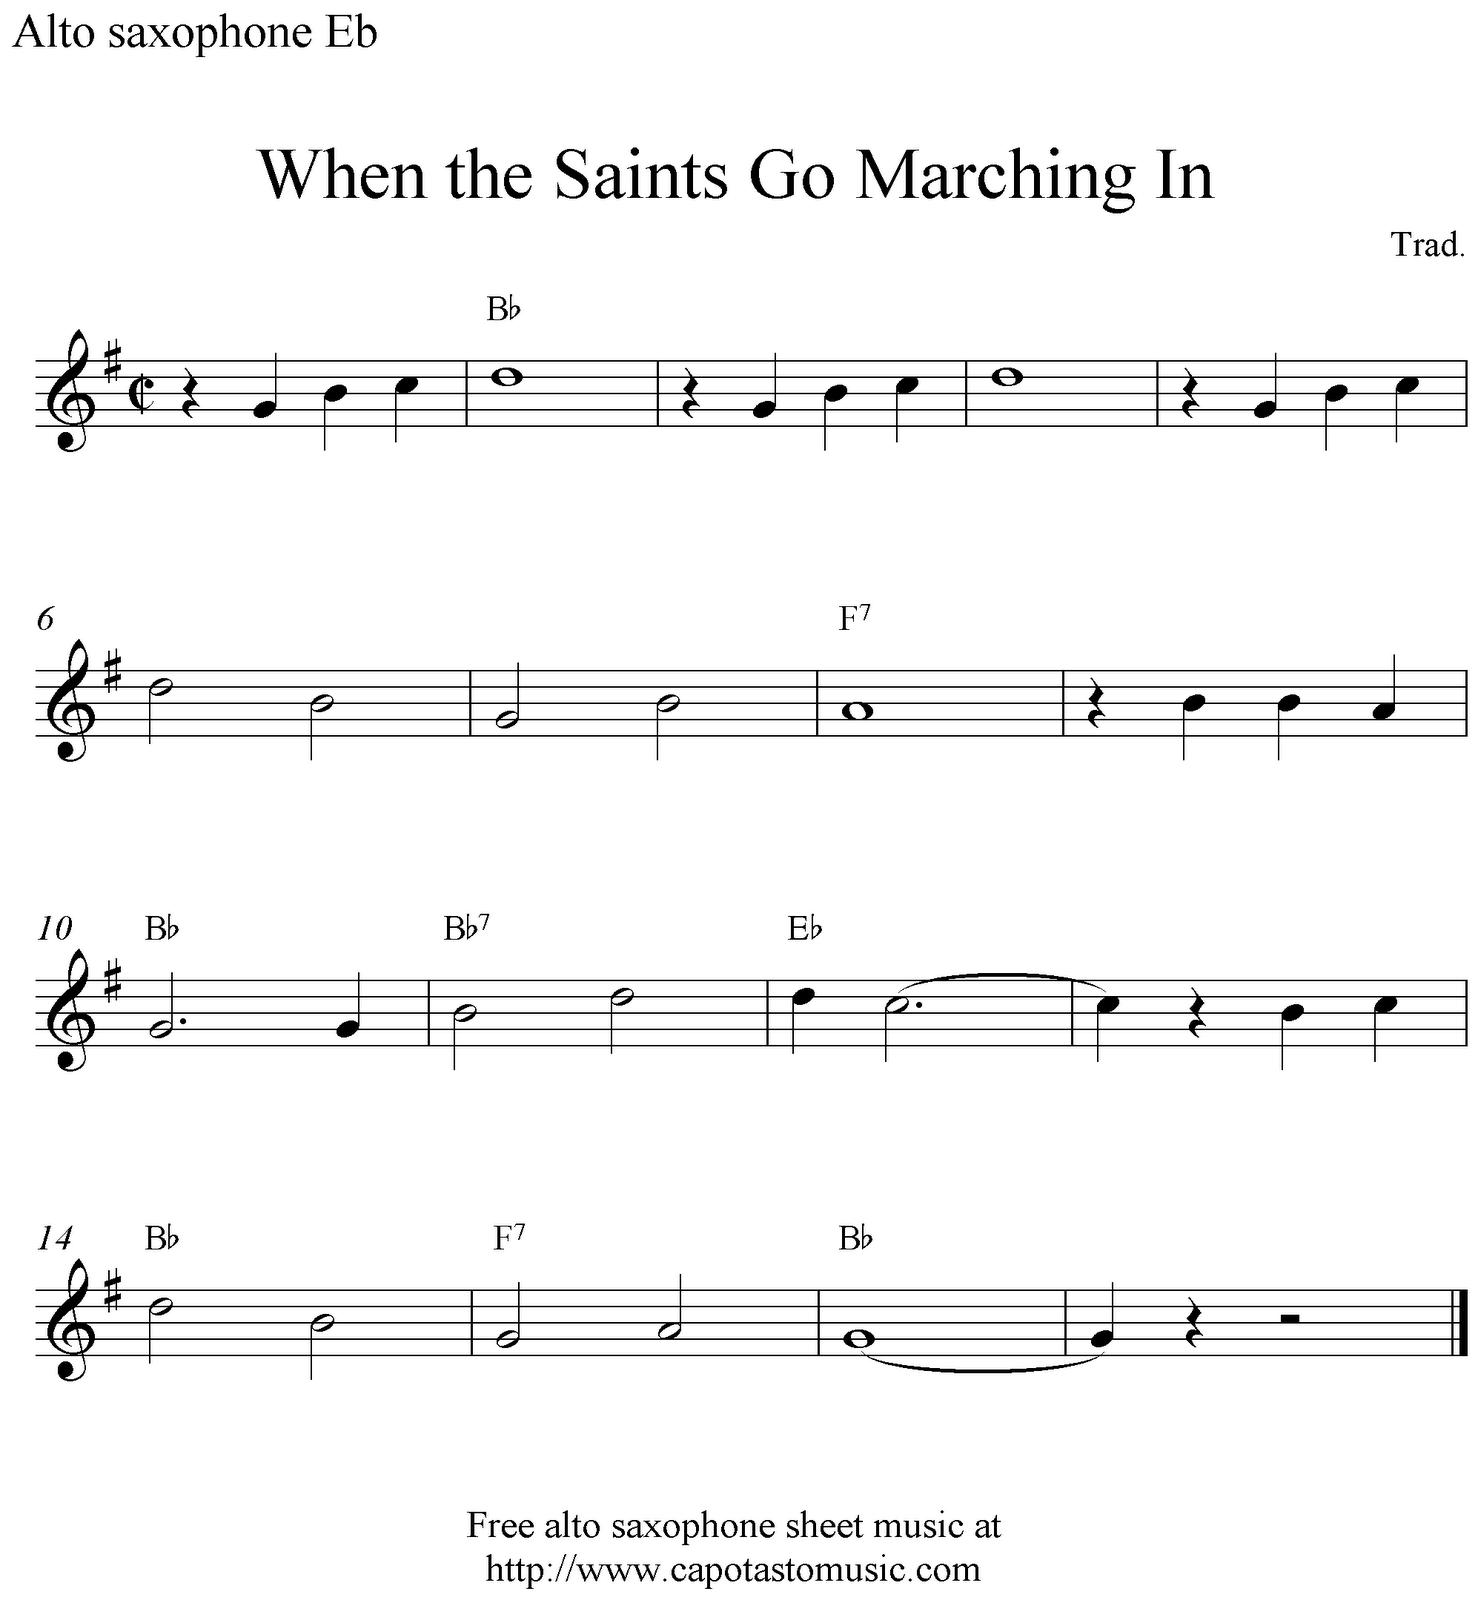 When The Saints Go Marching In Free Alto Saxophone Sheet Music Notes